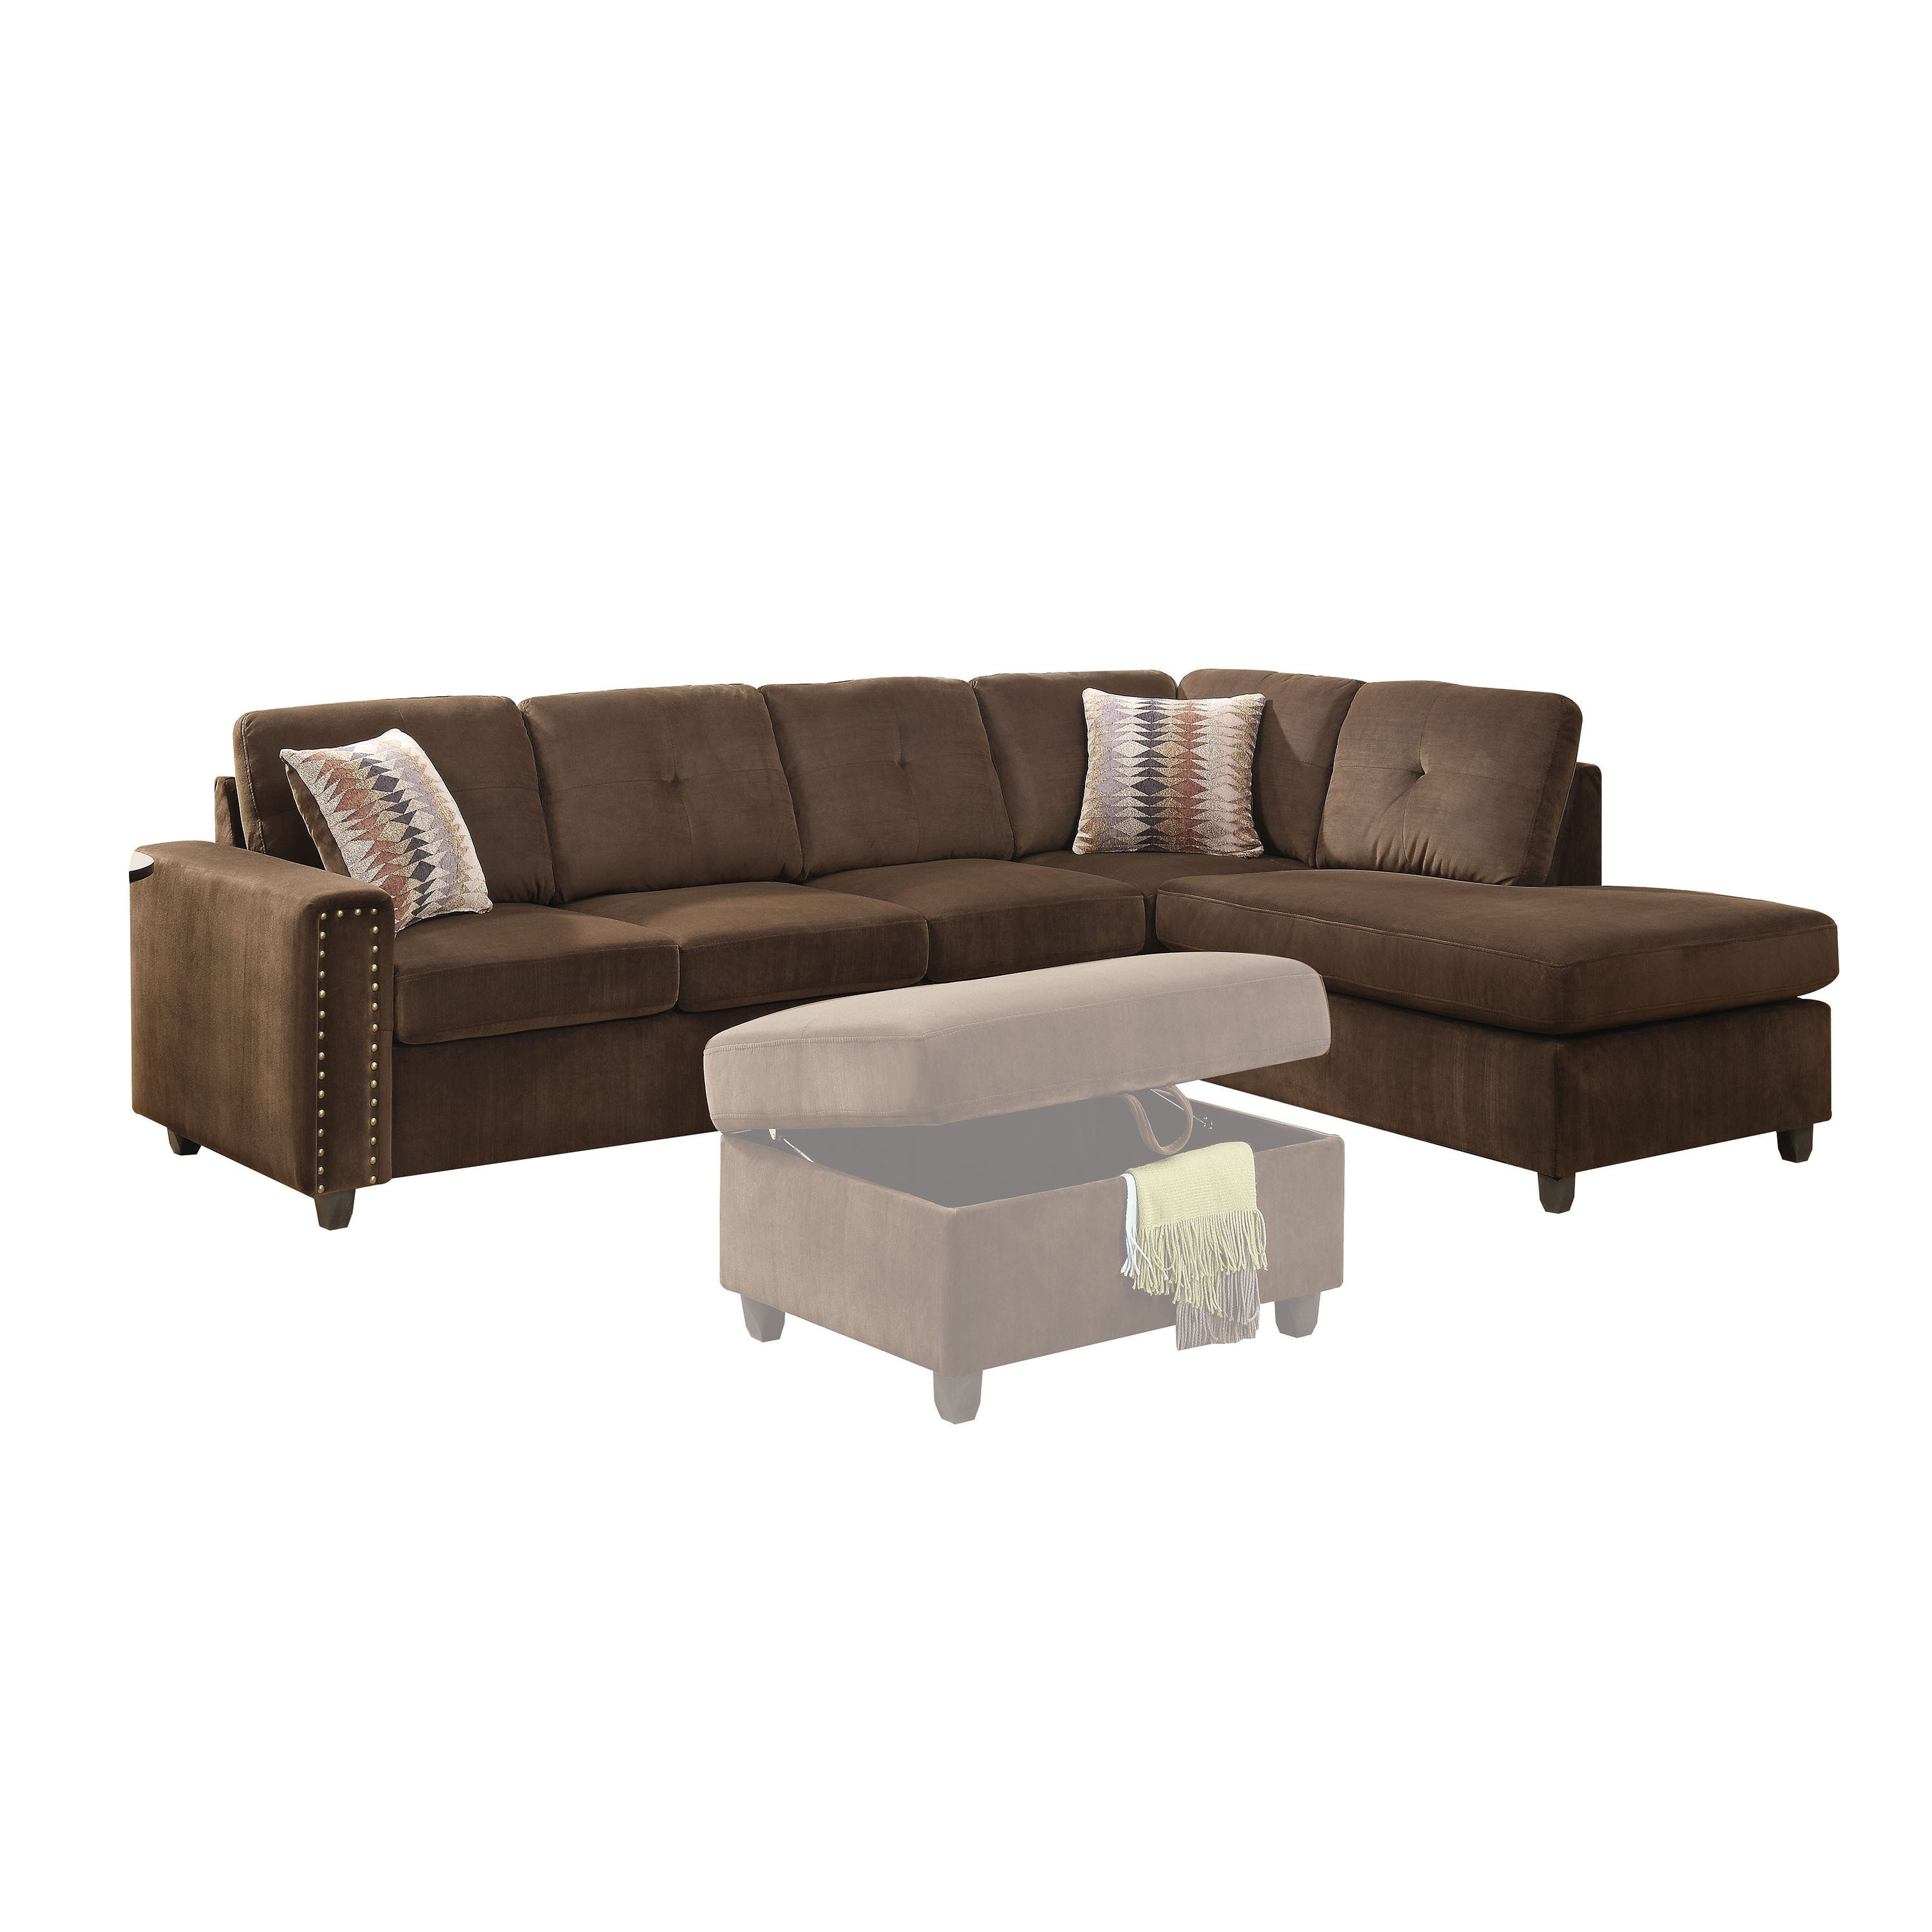 Belleville Sectional Sofa Review Home Co